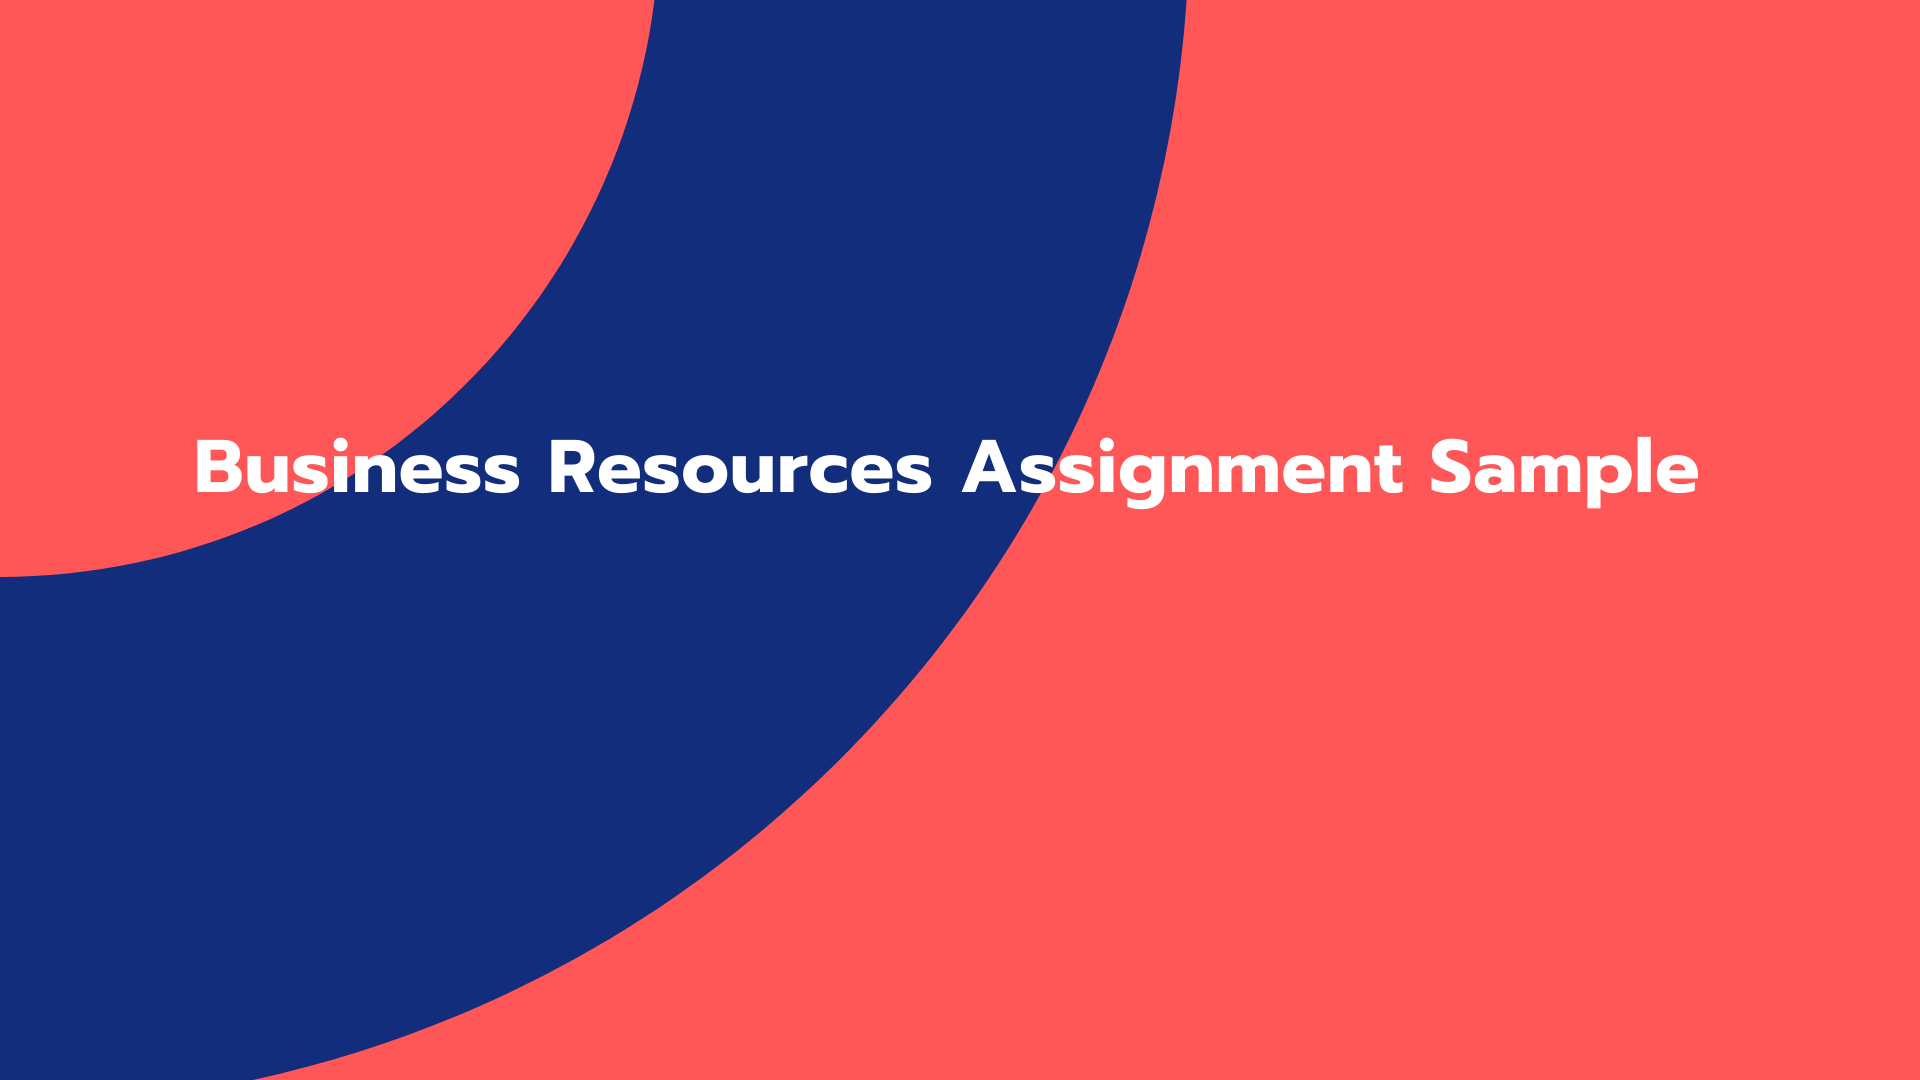 Business Resources Assignment Sample